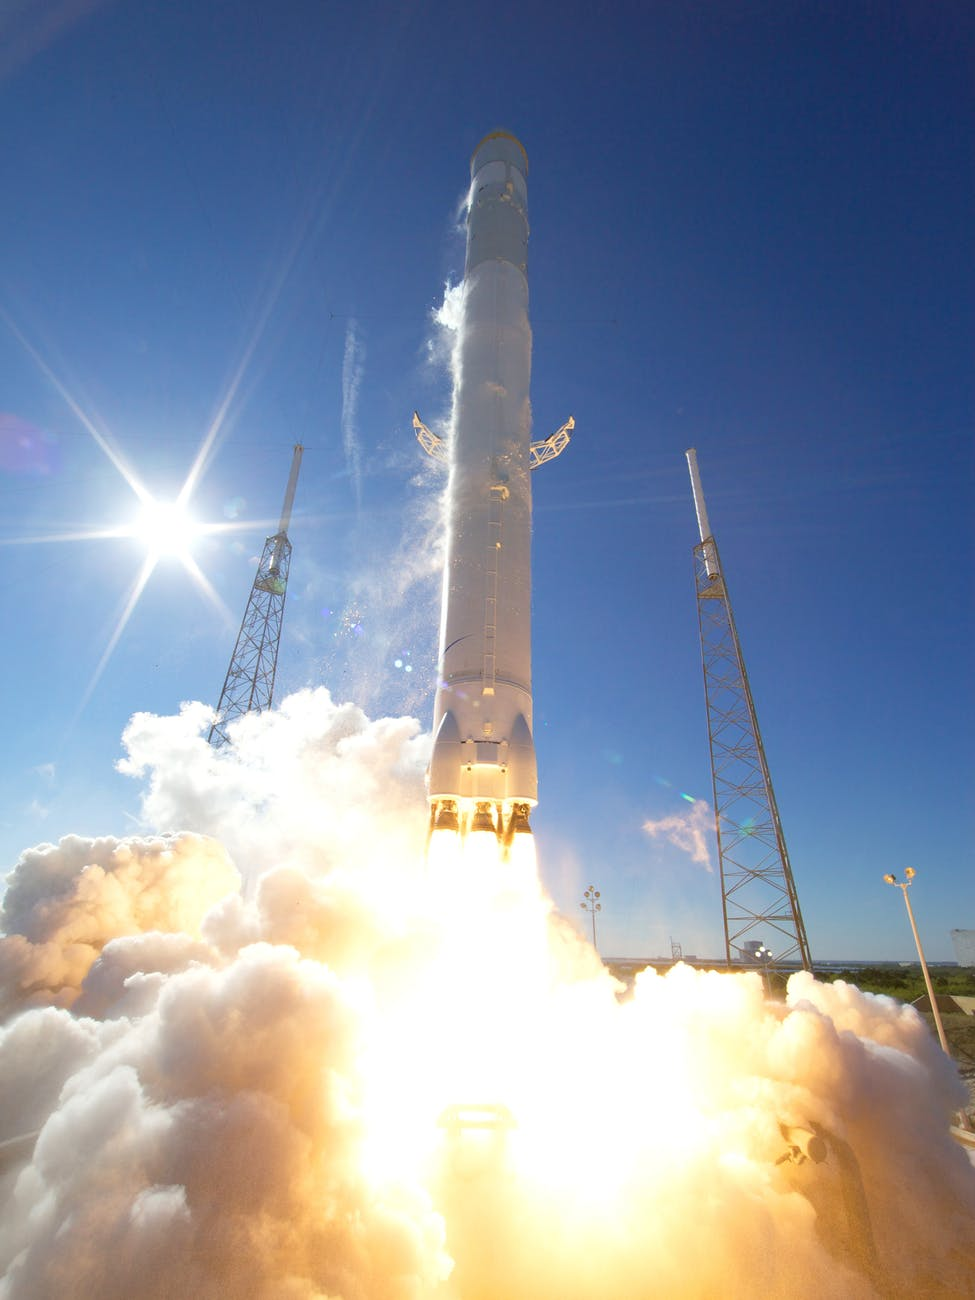 rocket-launch-space-discovery.jpg